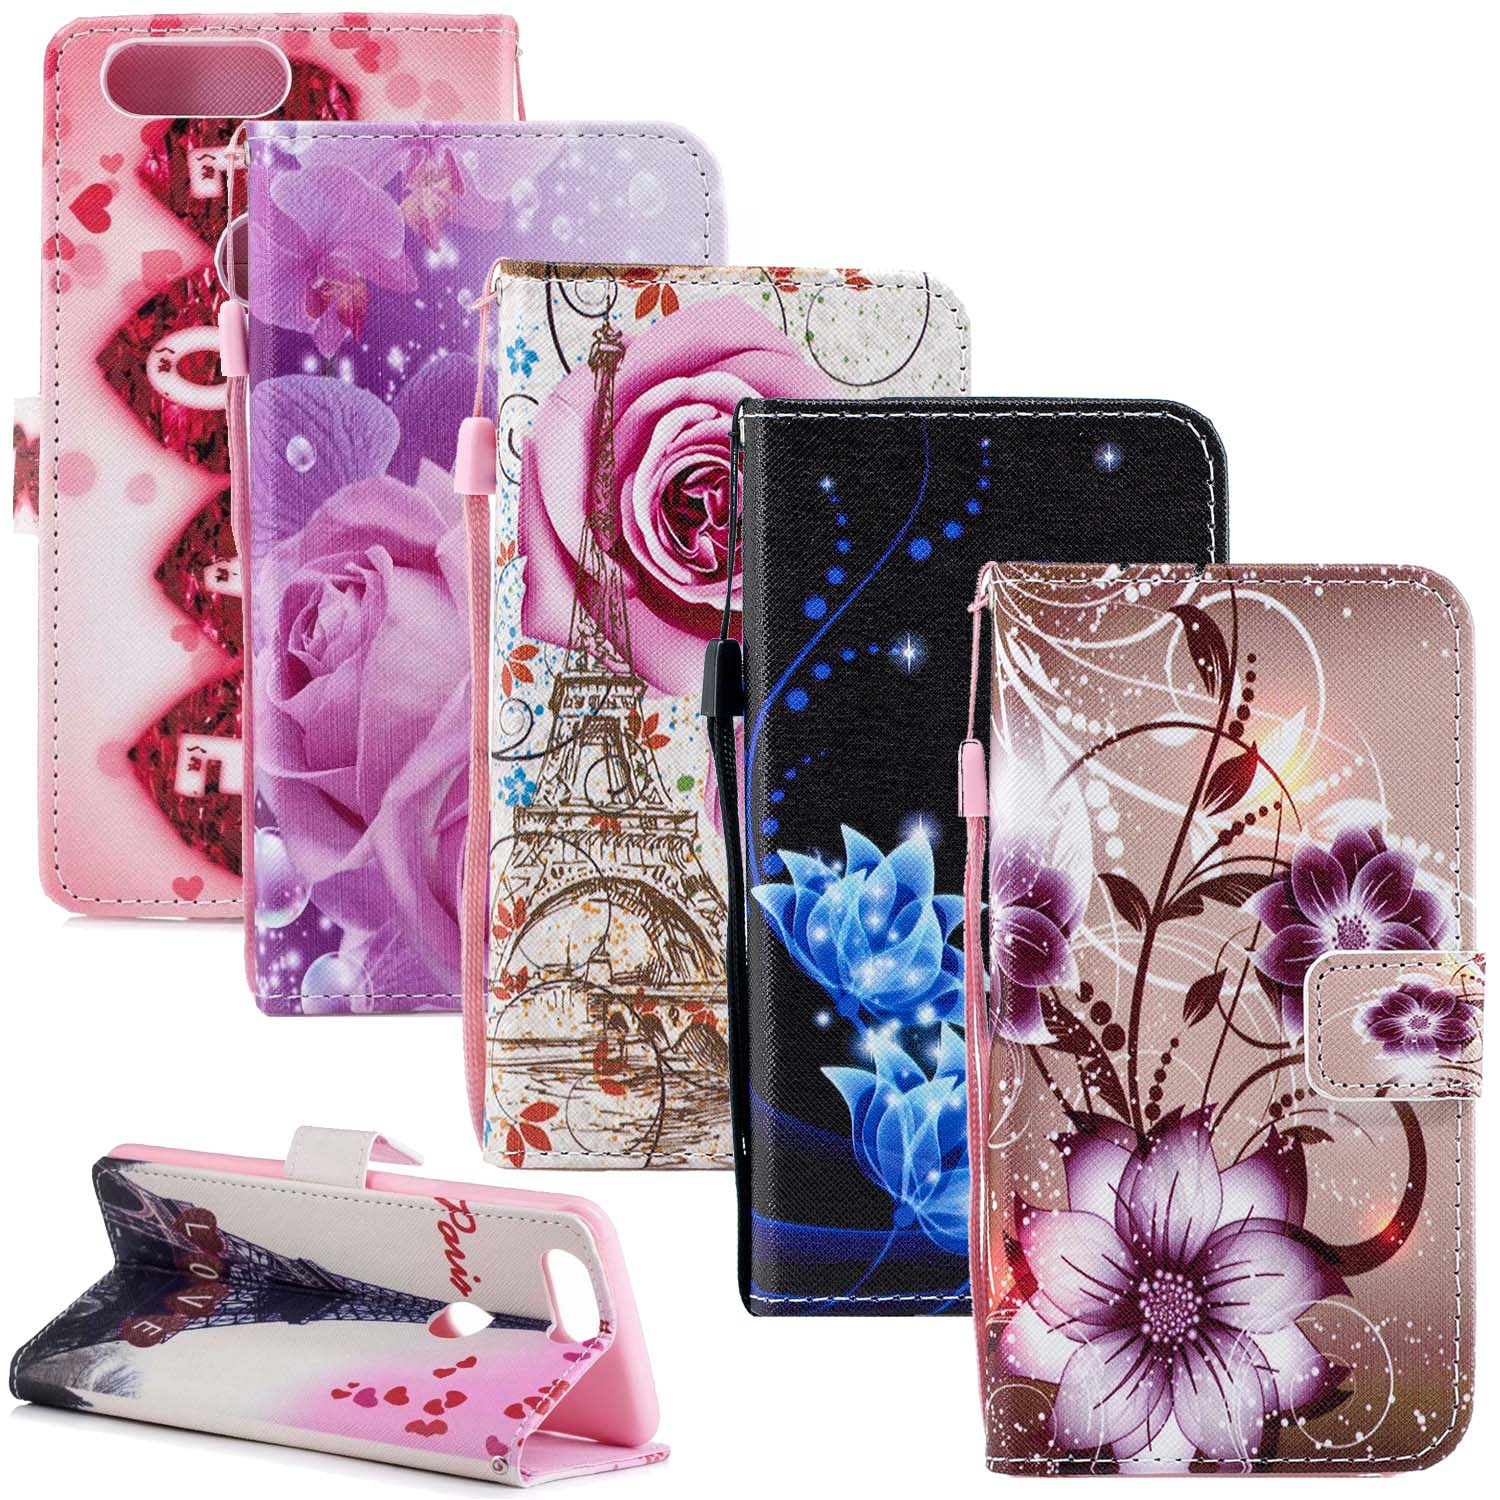 One Plus 5T 6T Flower Leather Wallet Cases For <font><b>Oneplus</b></font> 6T A6010 <font><b>A6013</b></font> Case <font><b>Oneplus</b></font> 5T A5010 1+ 5T 6T Flip Cover Phone Bag Coque image